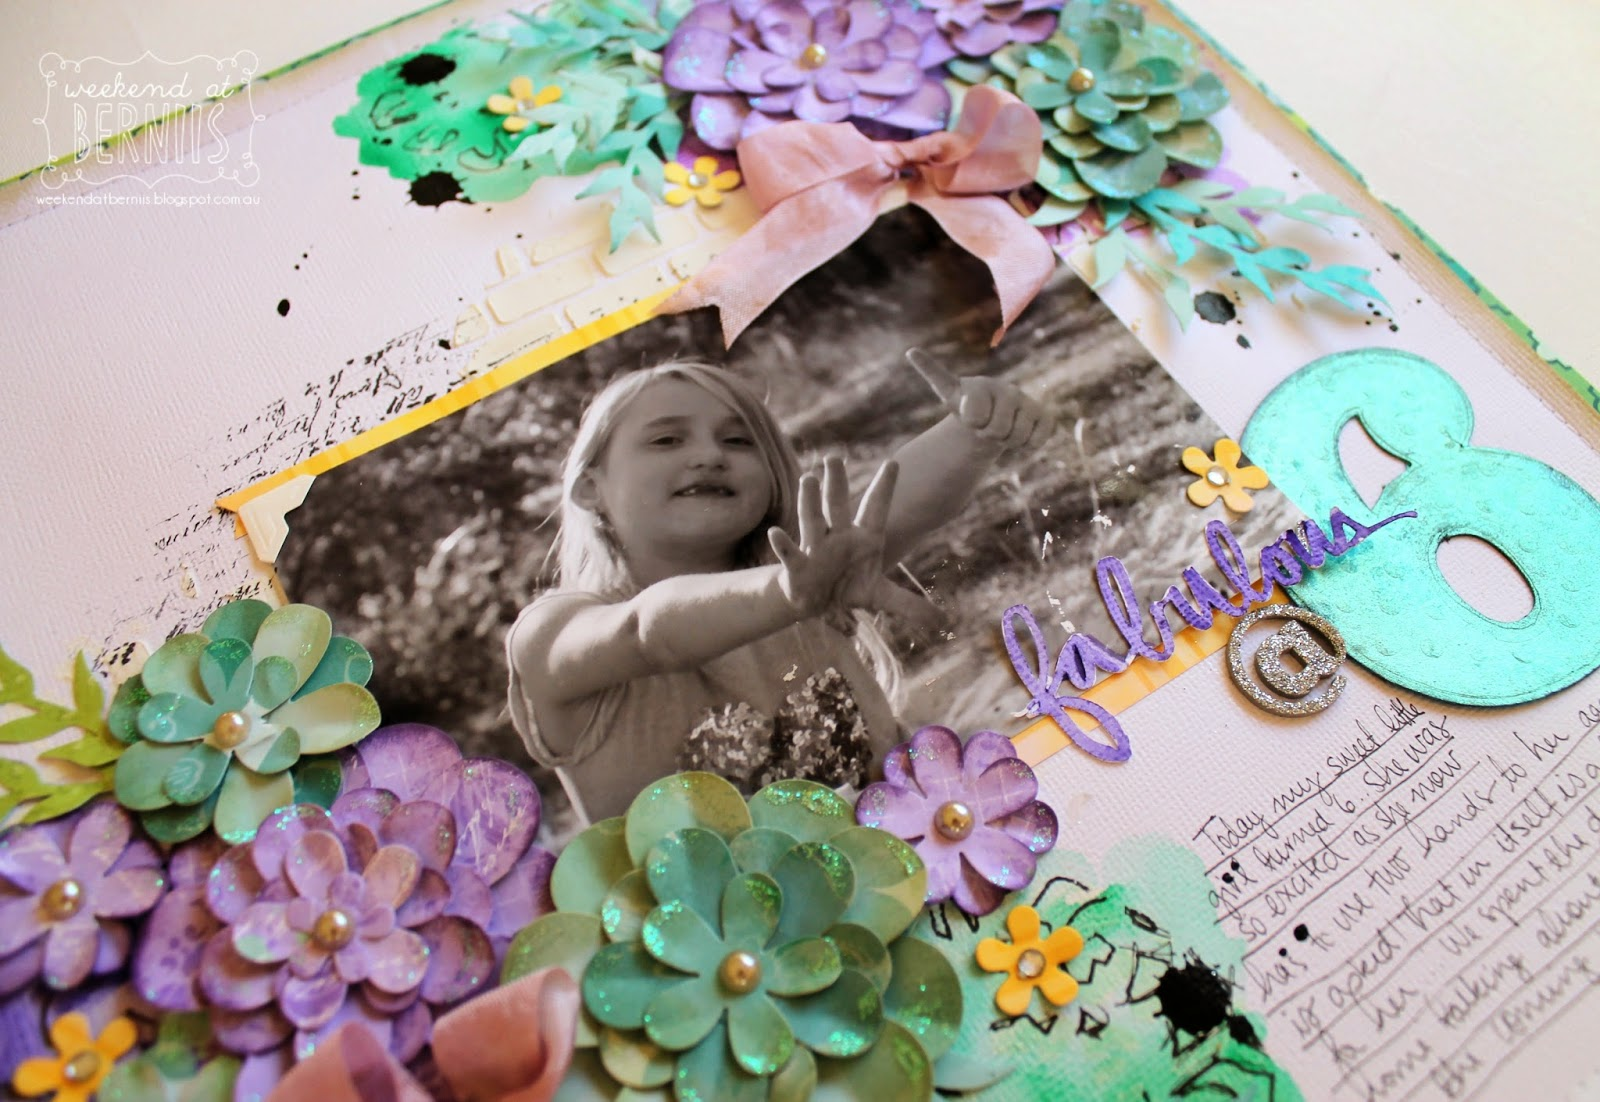 Fabulous at 6 layout by Bernii Miler using Couture Creations dies and BoBunny Enchanted Garden Collection.